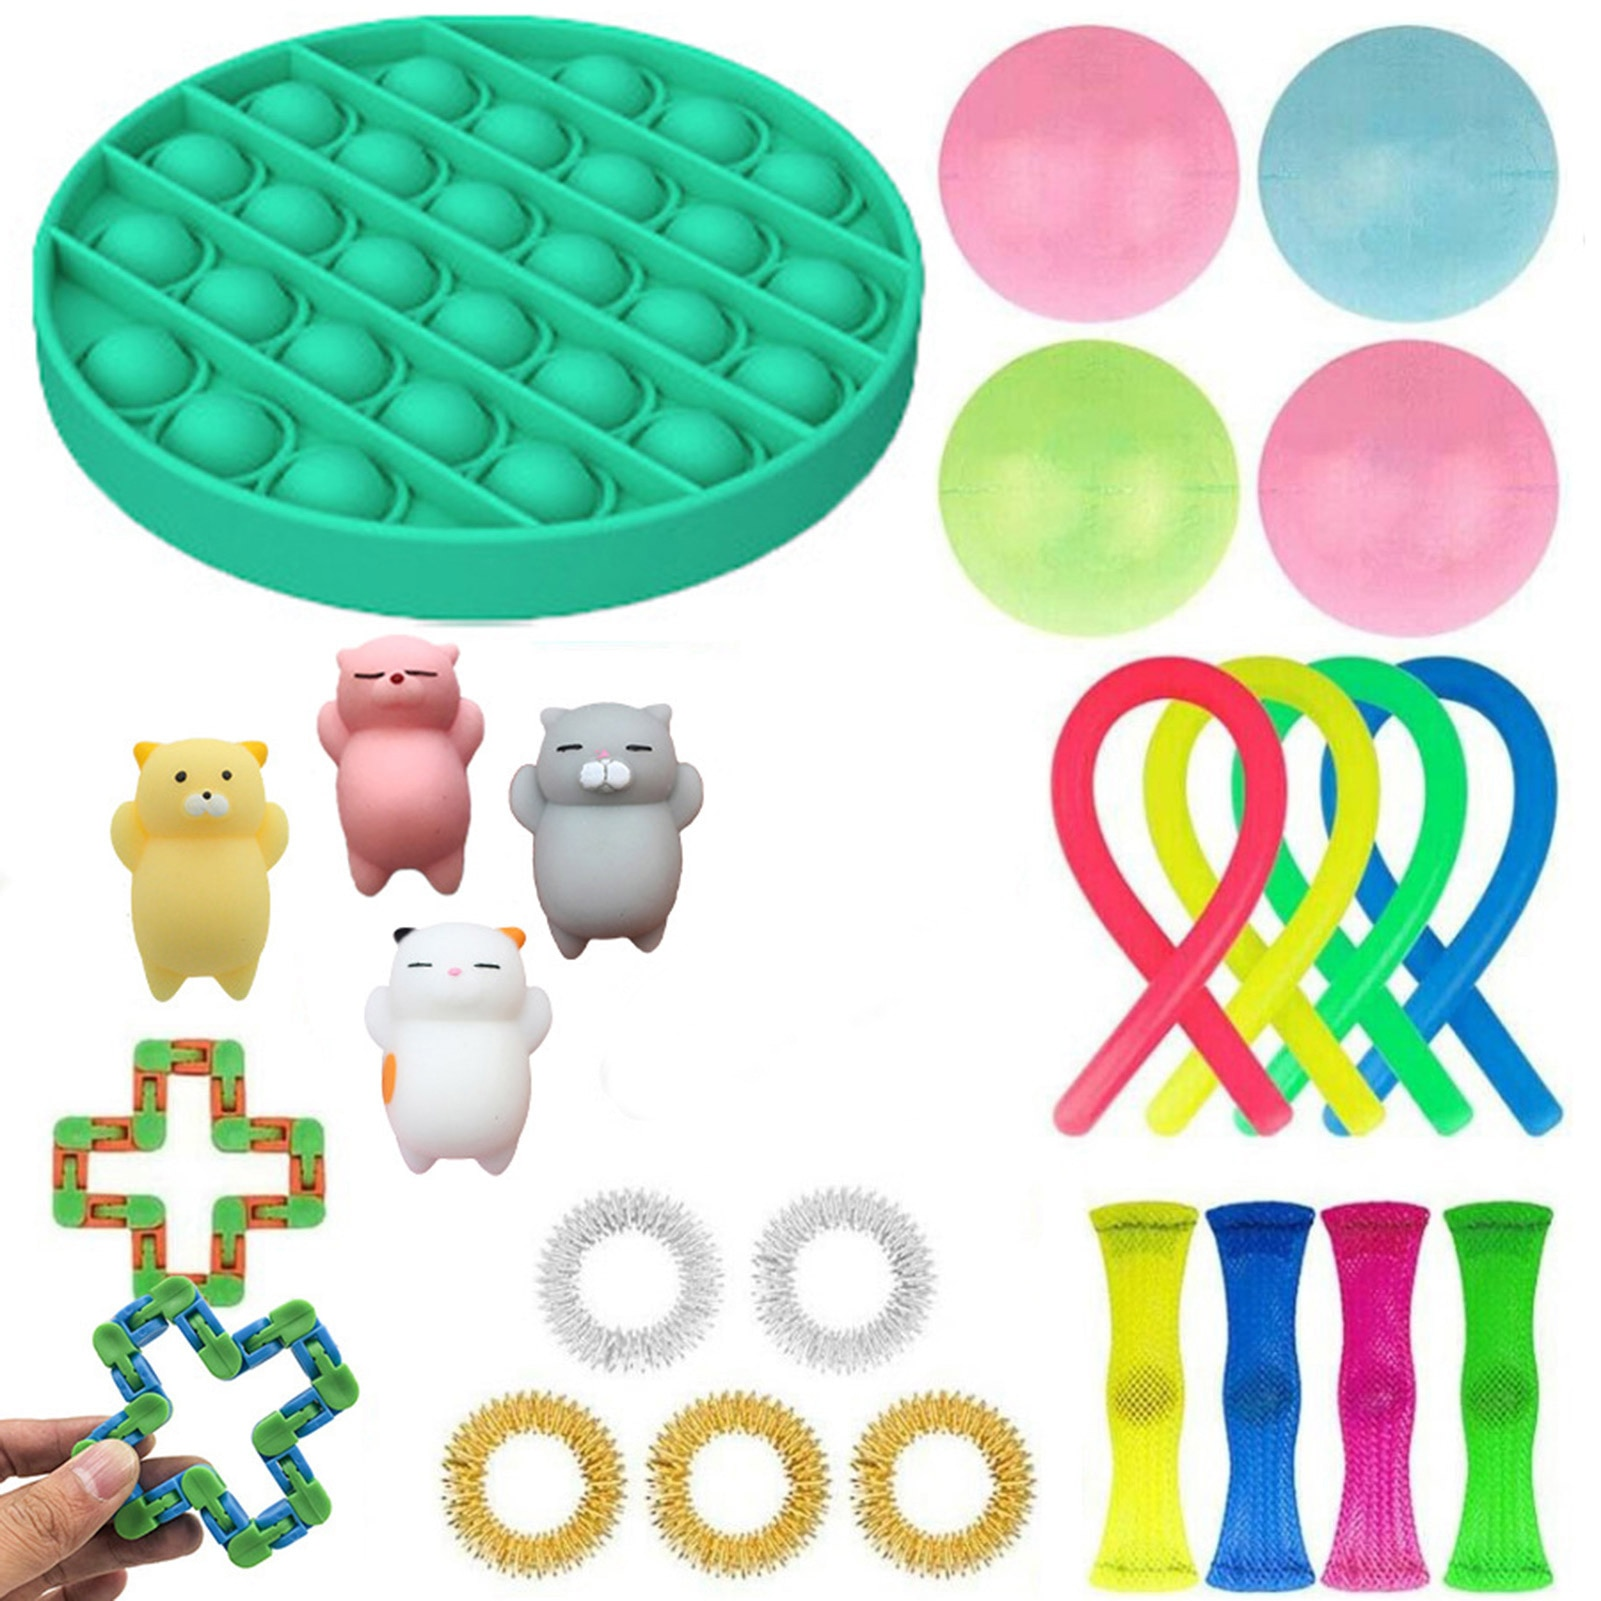 25Pcs Non-toxic Stress Relieving Toys Squeezed Bubble Track Chain Glue Noodles Decompressive Sensory Toy Set For Kids Adults enlarge